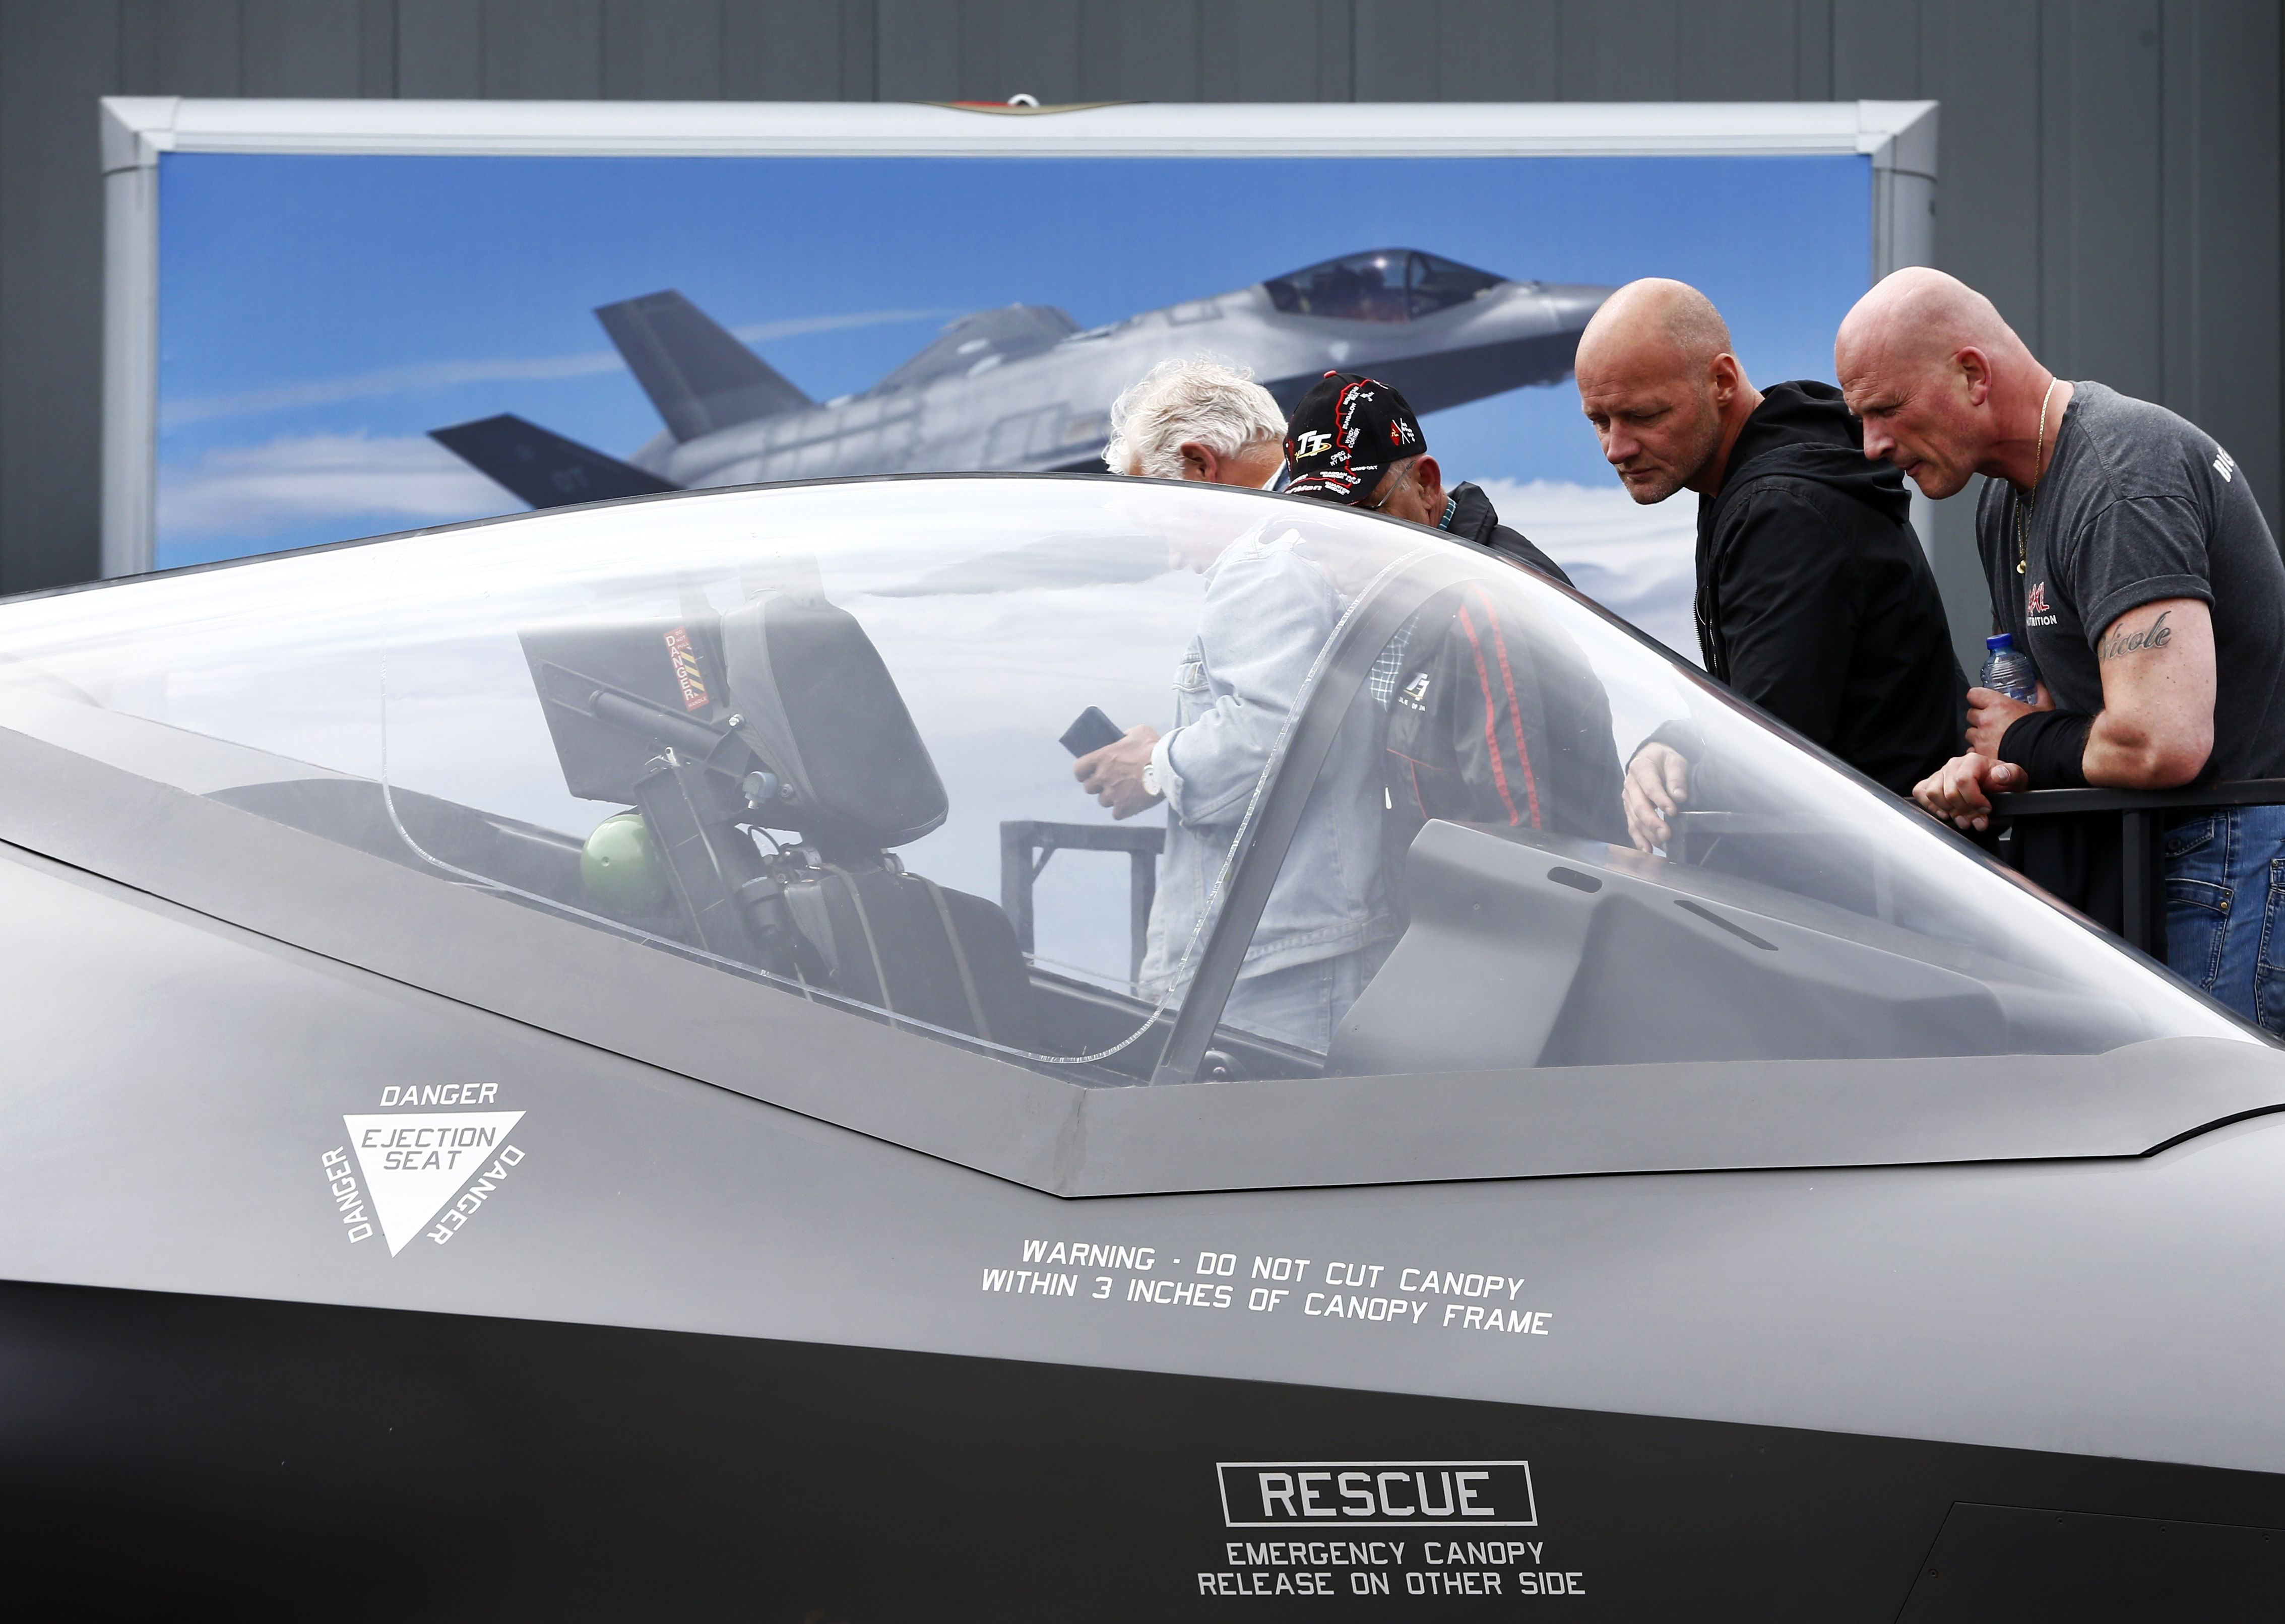 Visitors examine a replica of the Dutch F-35C Lightning II joint striker fighter aircraft during the Dutch Air Force Days at Leeuwarden Air Base in Leeuwarden on June 10, 2016. (Photo credit Vincent Jannink/AFP/Getty Images)